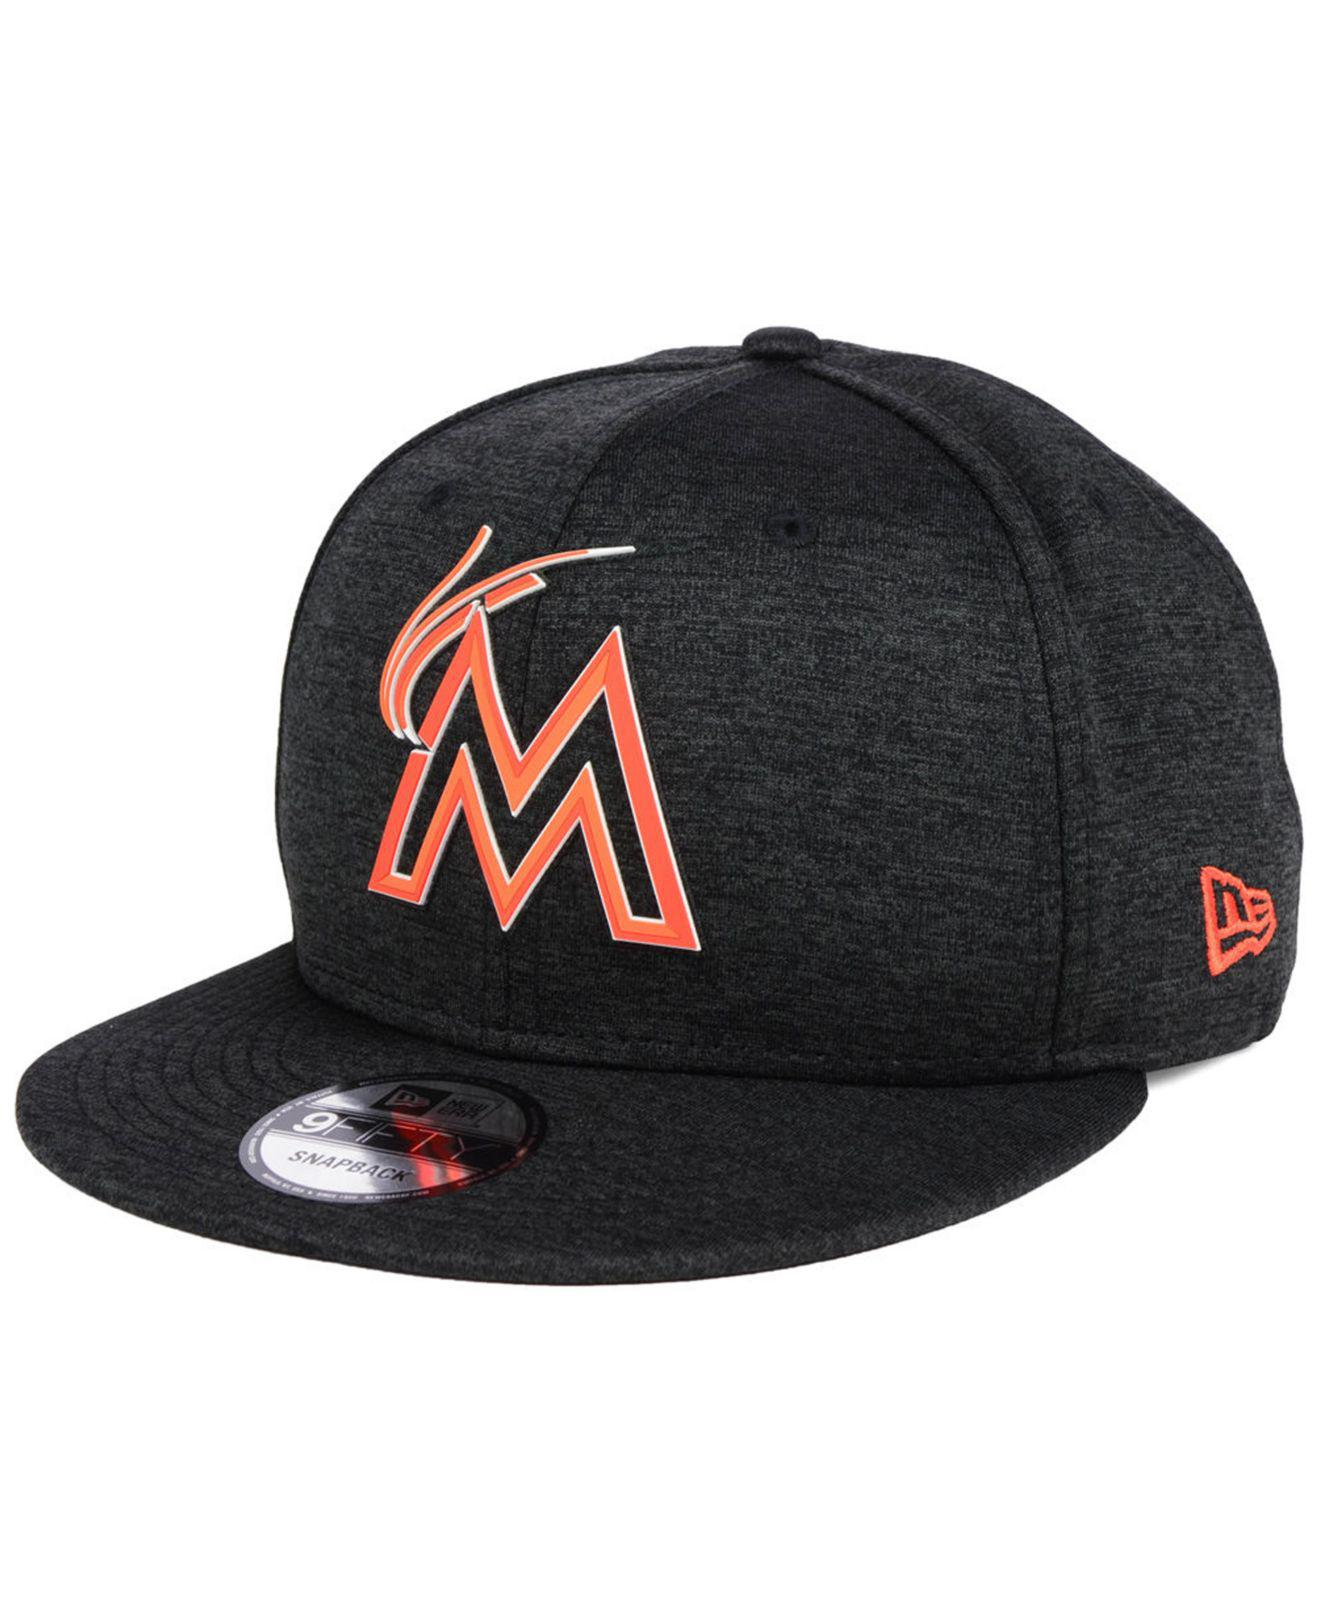 on sale 7b5ed efe20 Lyst - KTZ Miami Marlins Clubhouse Jersey Pop 9fifty Snapback Cap in ...